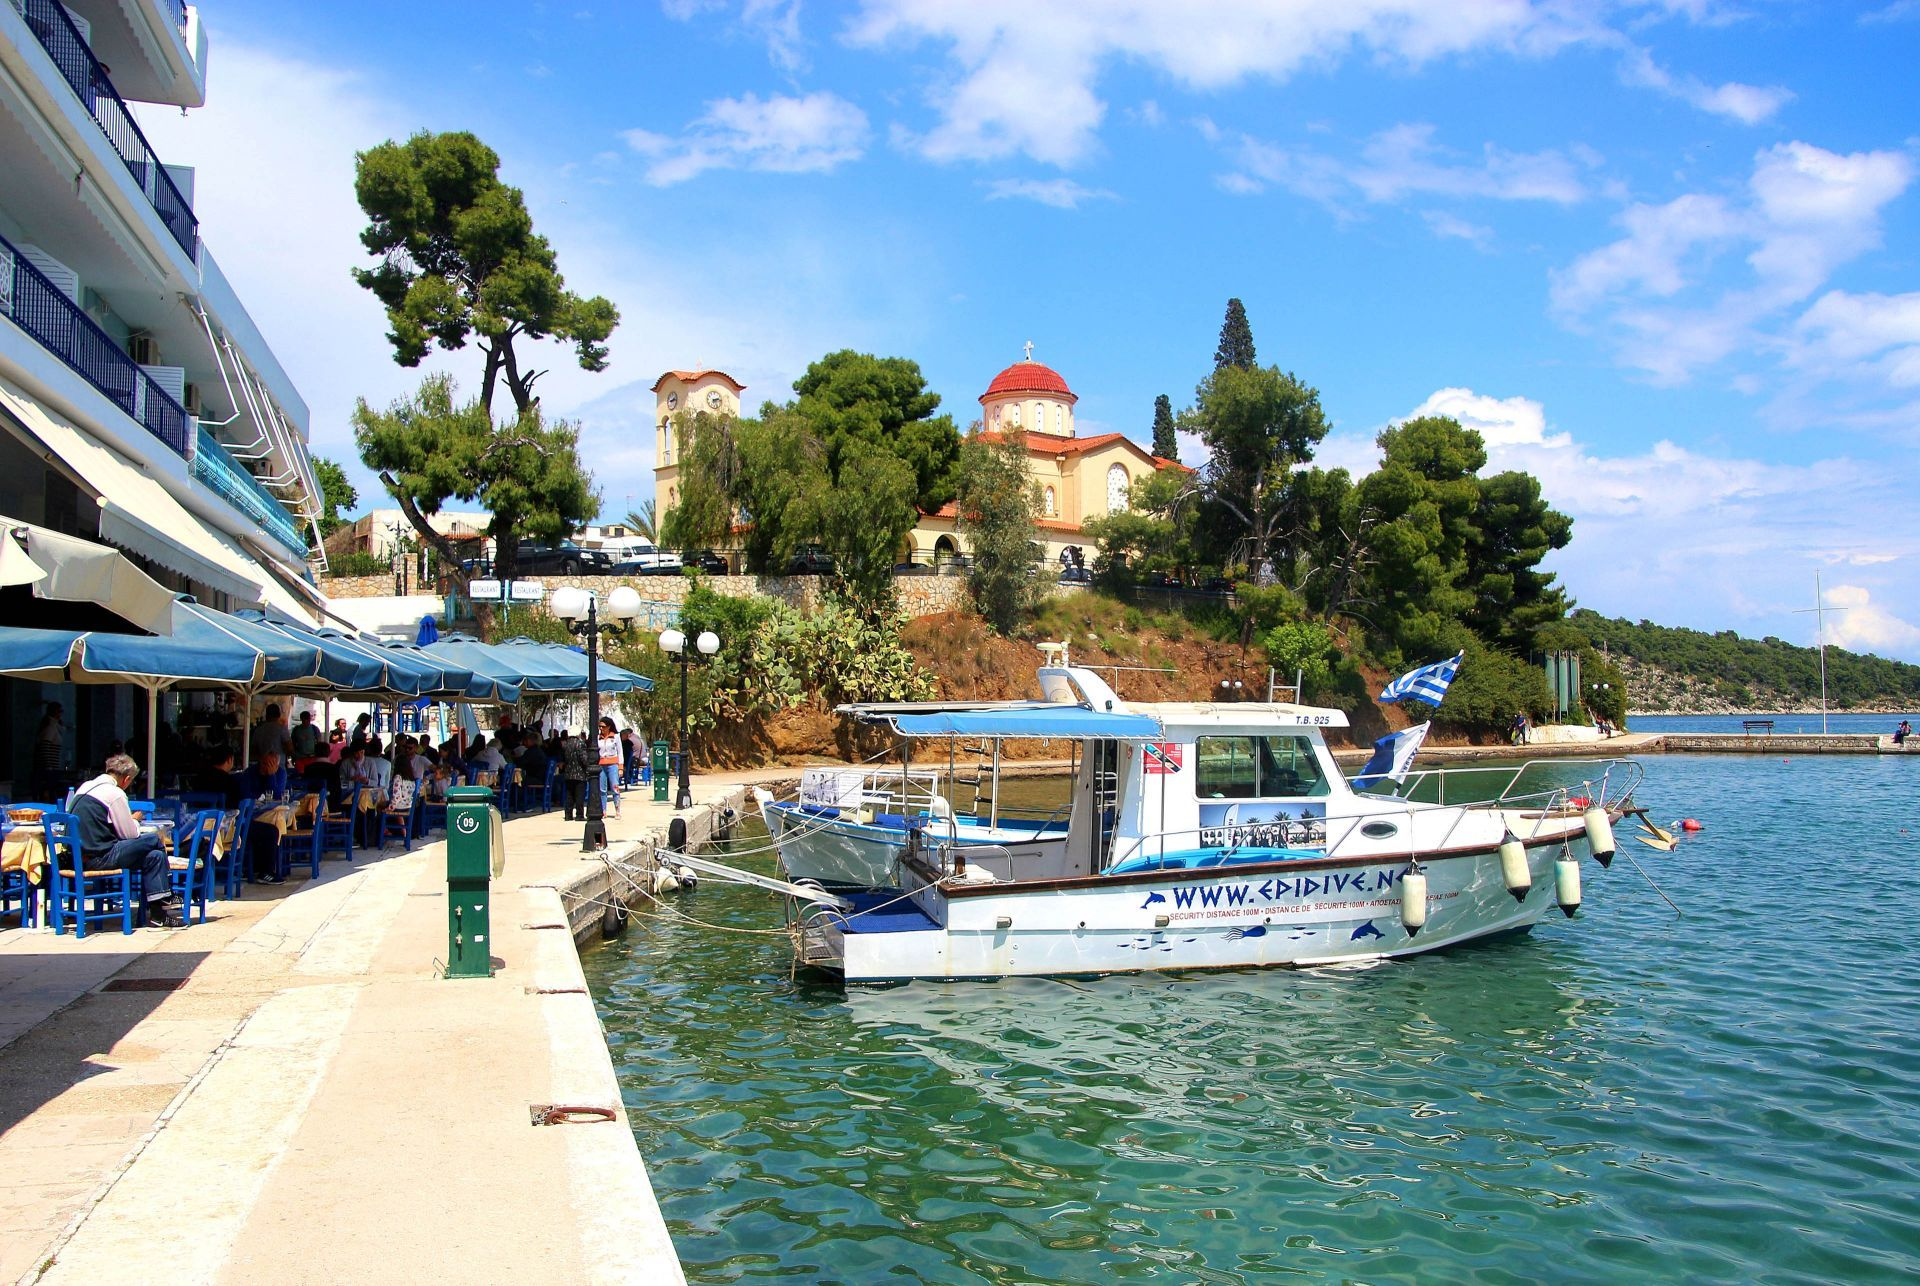 Places to eat and drink in Epidaurus